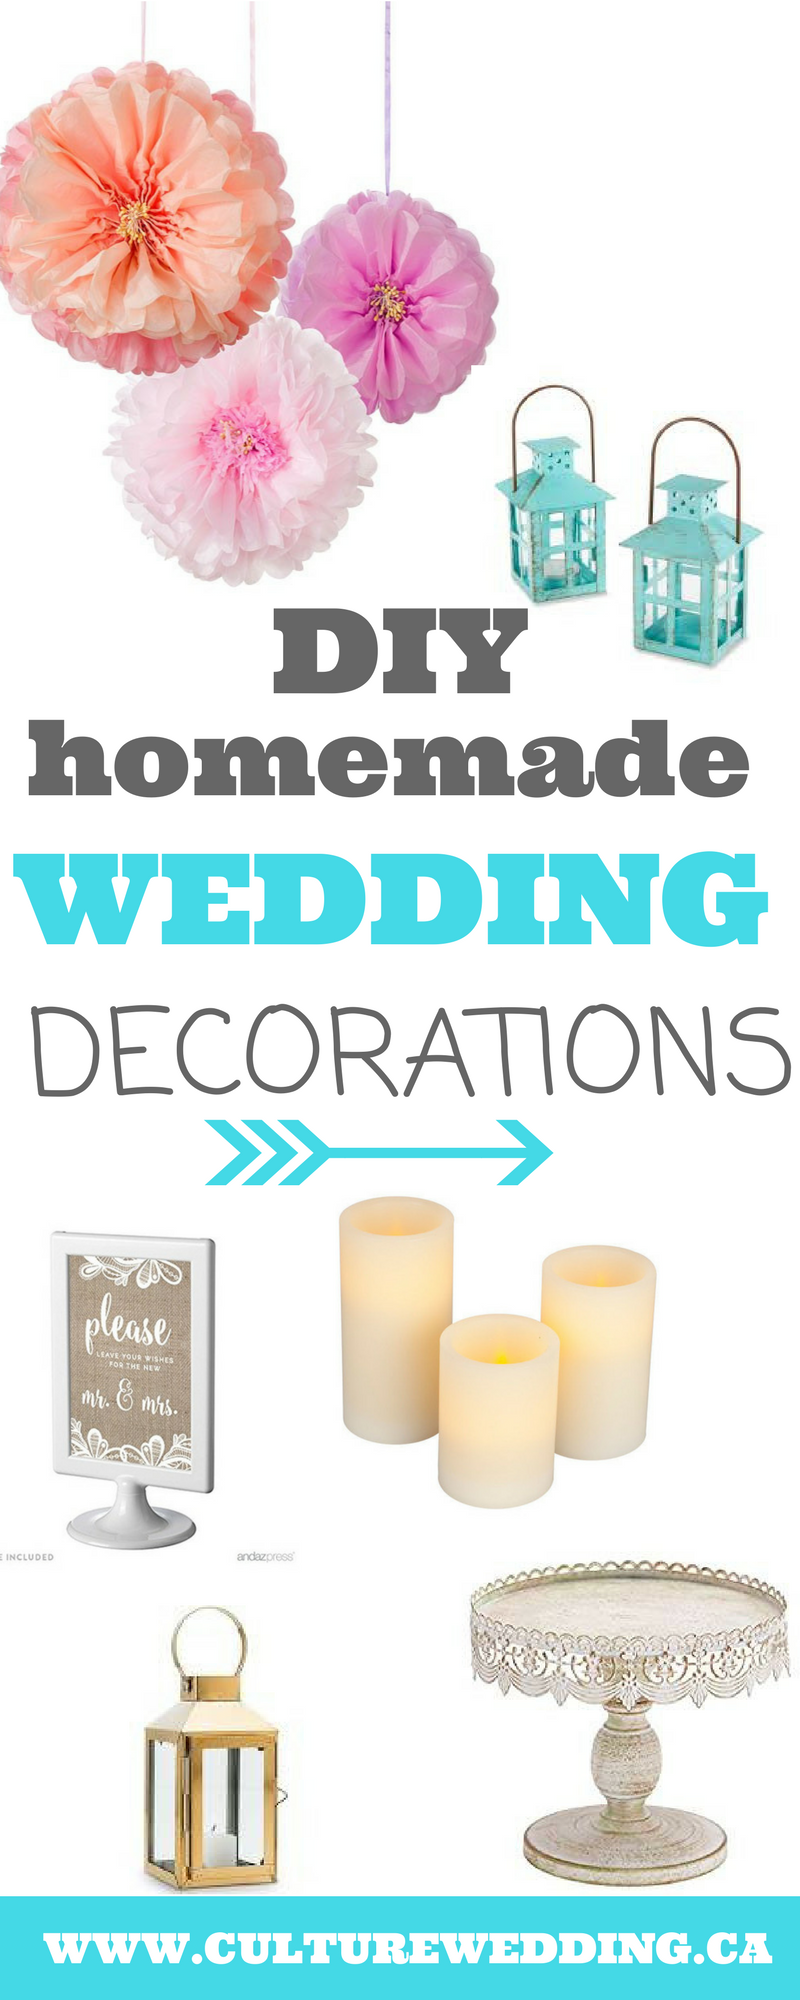 DIY wedding decorations. Cheap homemade wedding decorations. Wedding decorations on a budget. Planning a wedding on a budget. DIY outdoor wedding decorations on a budget. How to plan a wedding on a budget. Making your own wedding decorations. #WEDDINGDECORATIONS #DIYWEDDING